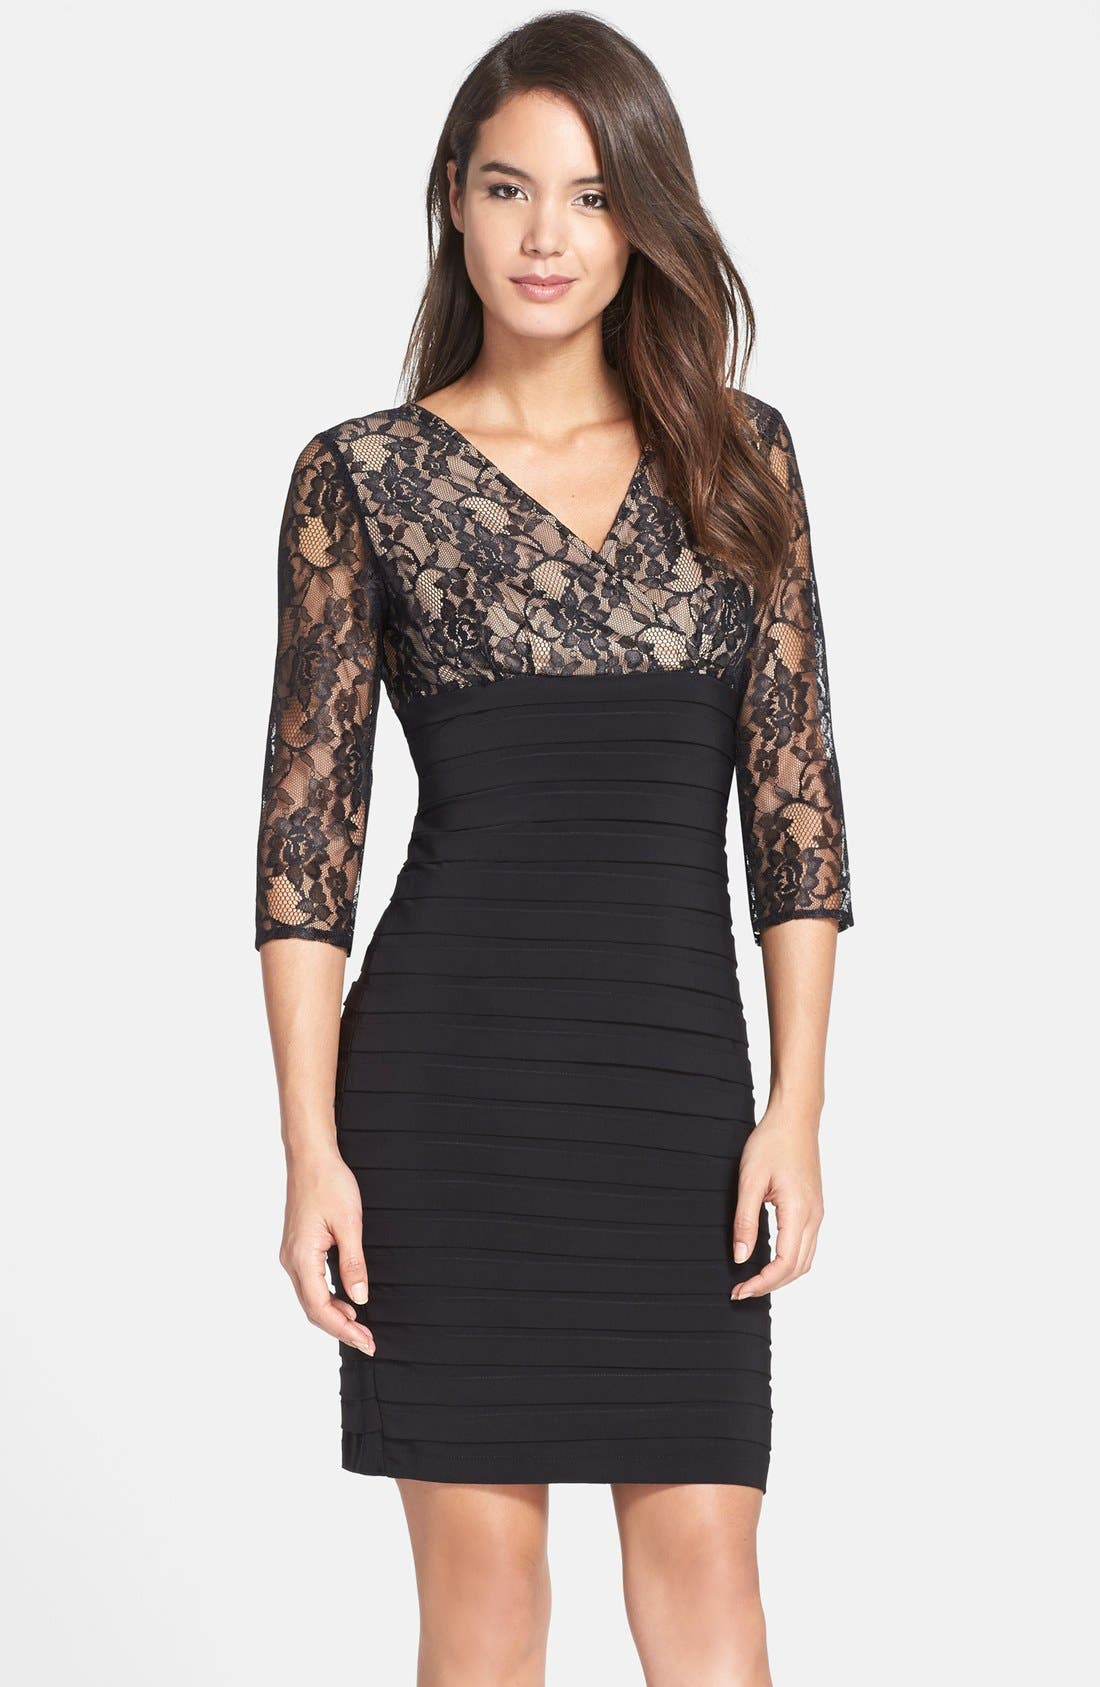 Alternate Image 1 Selected - Adrianna Papell Lace Bodice Banded Sheath Dress (Regular & Petite)